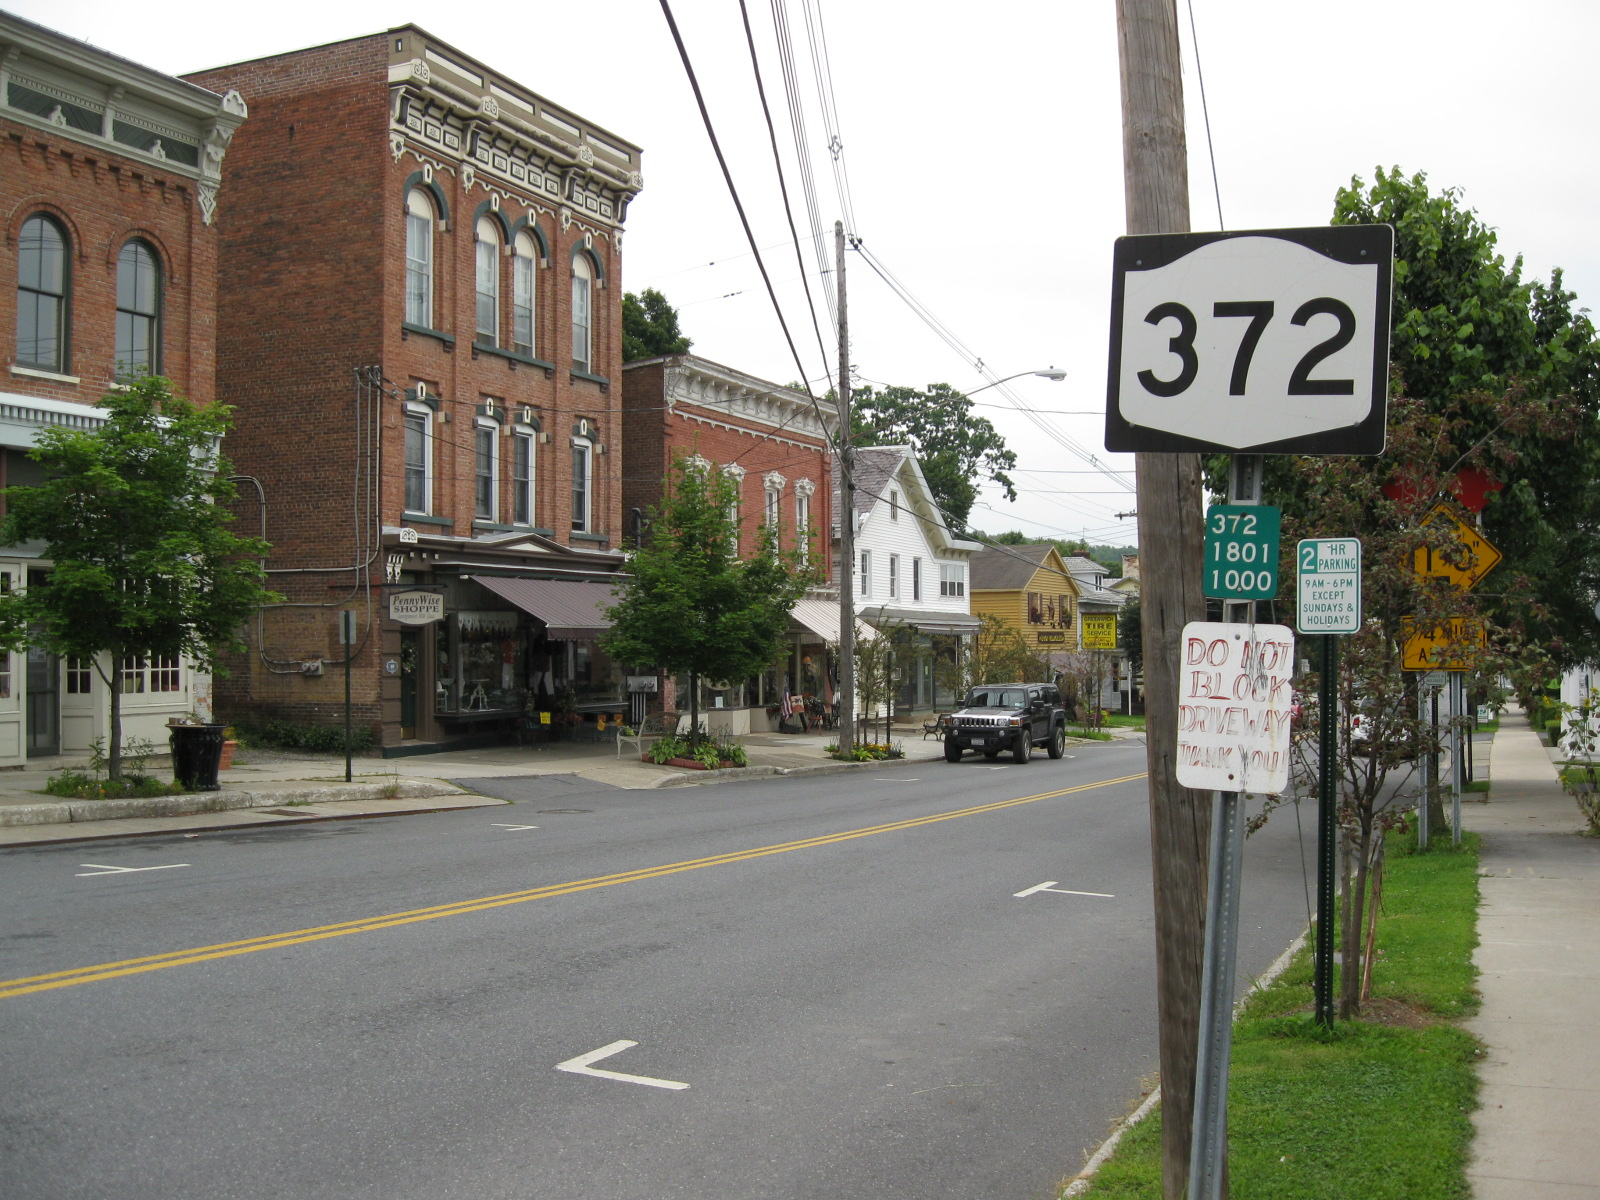 File:NY 372 heading eastbound in Greenwich.jpg